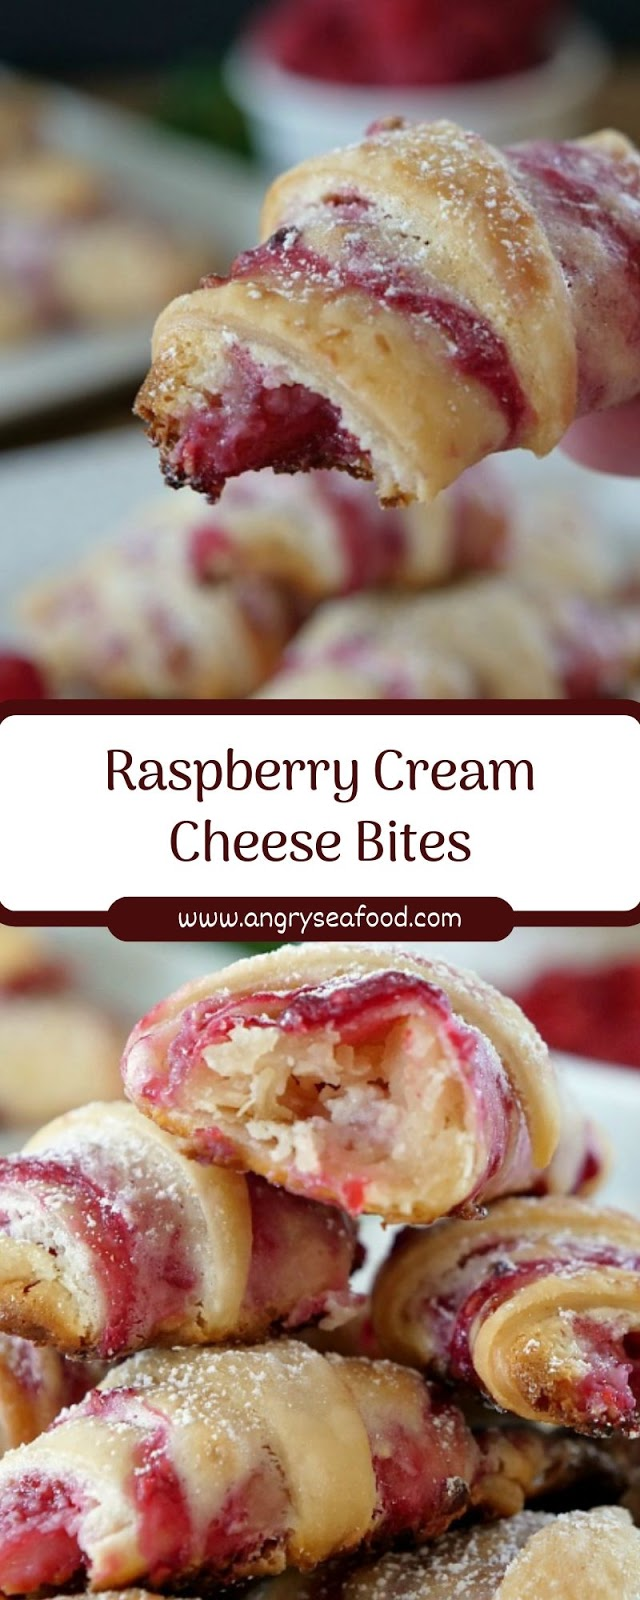 Raspberry Cream Cheese Bites